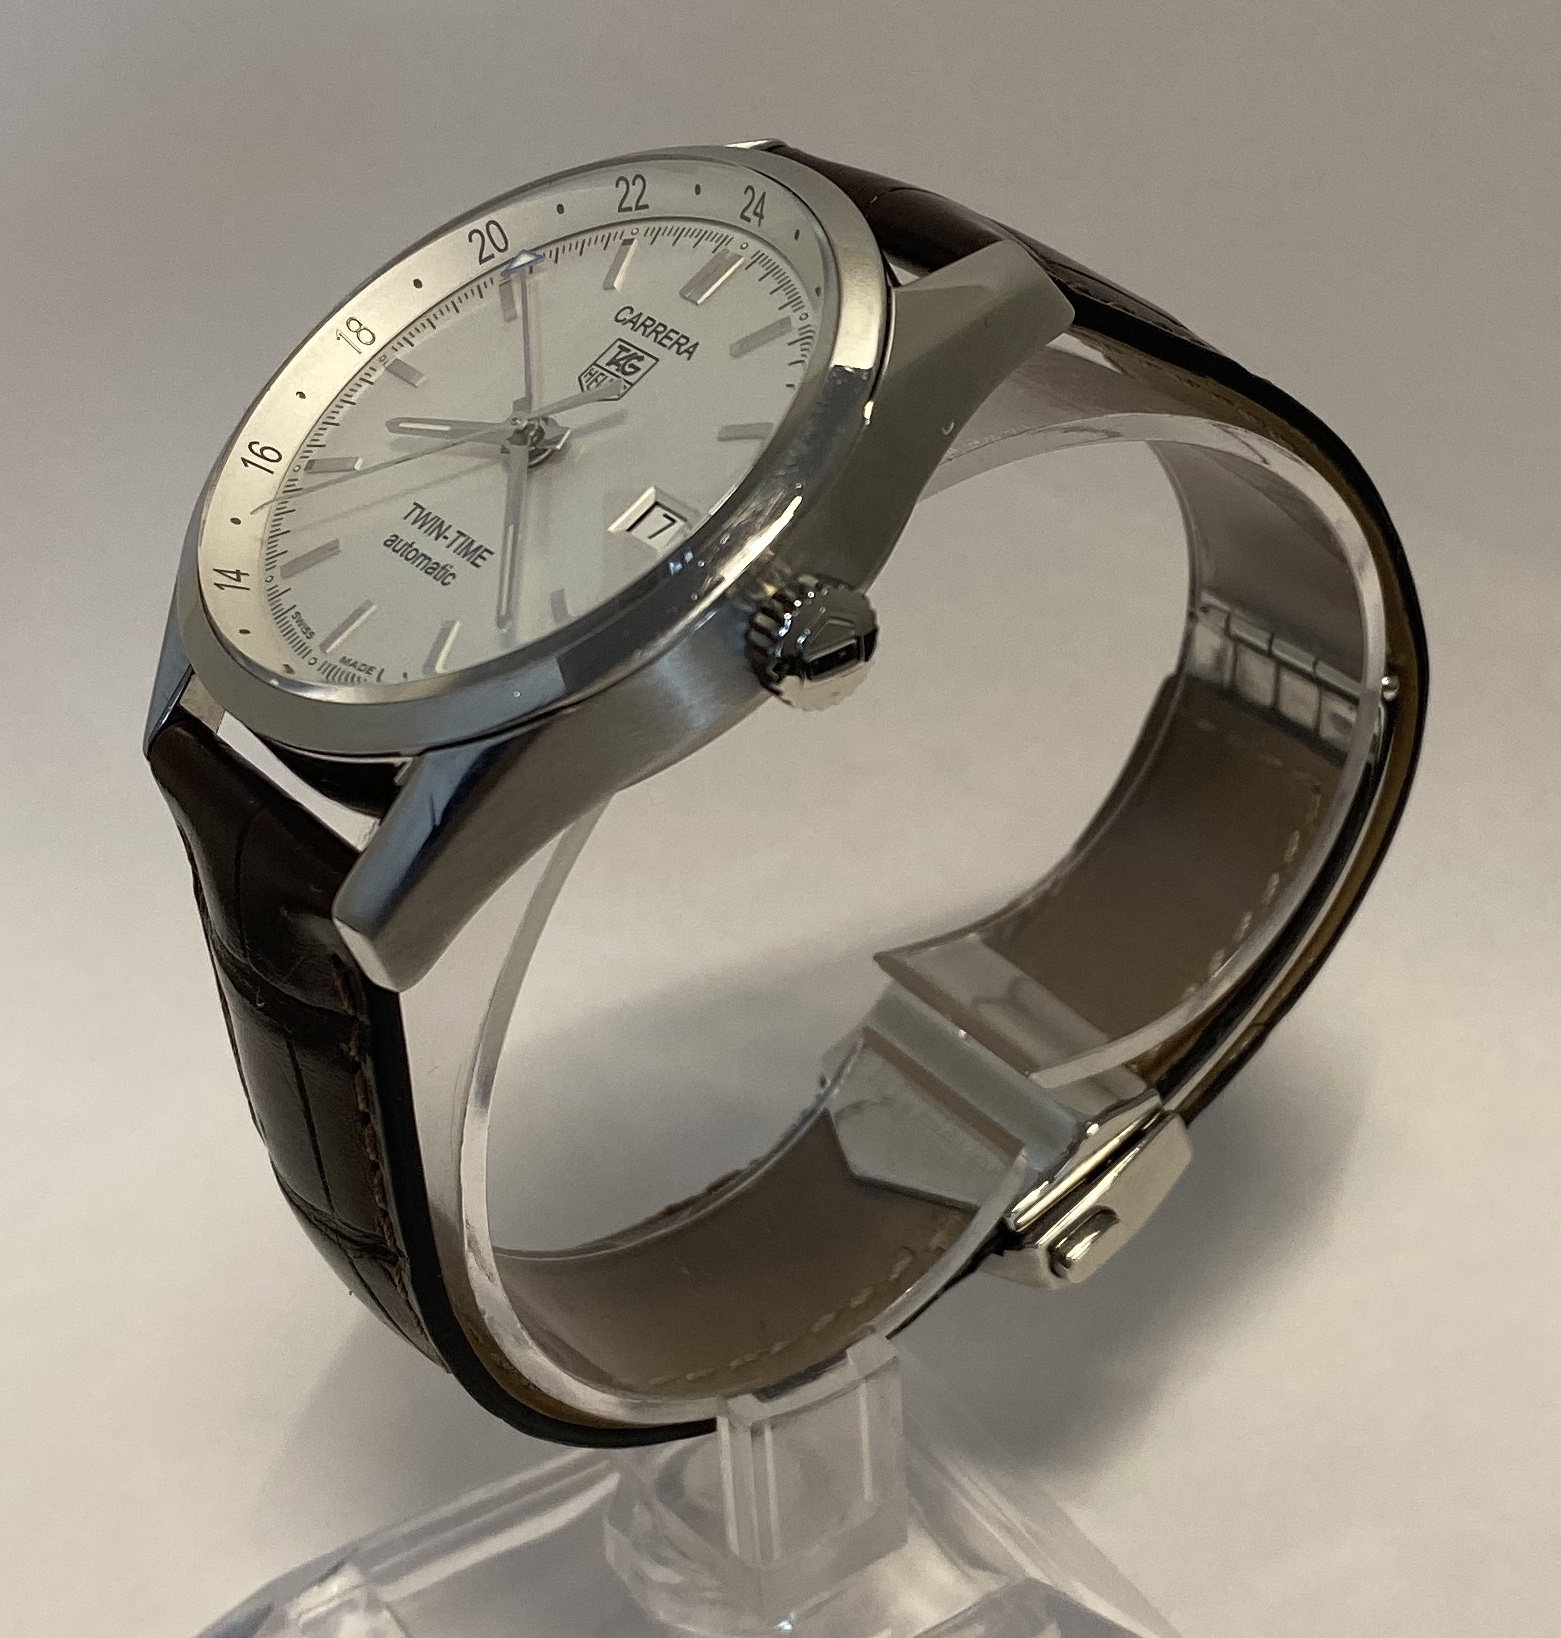 Lot 34 - Gents Tag Heuer Gmt Carrera Twin-Time Automatic